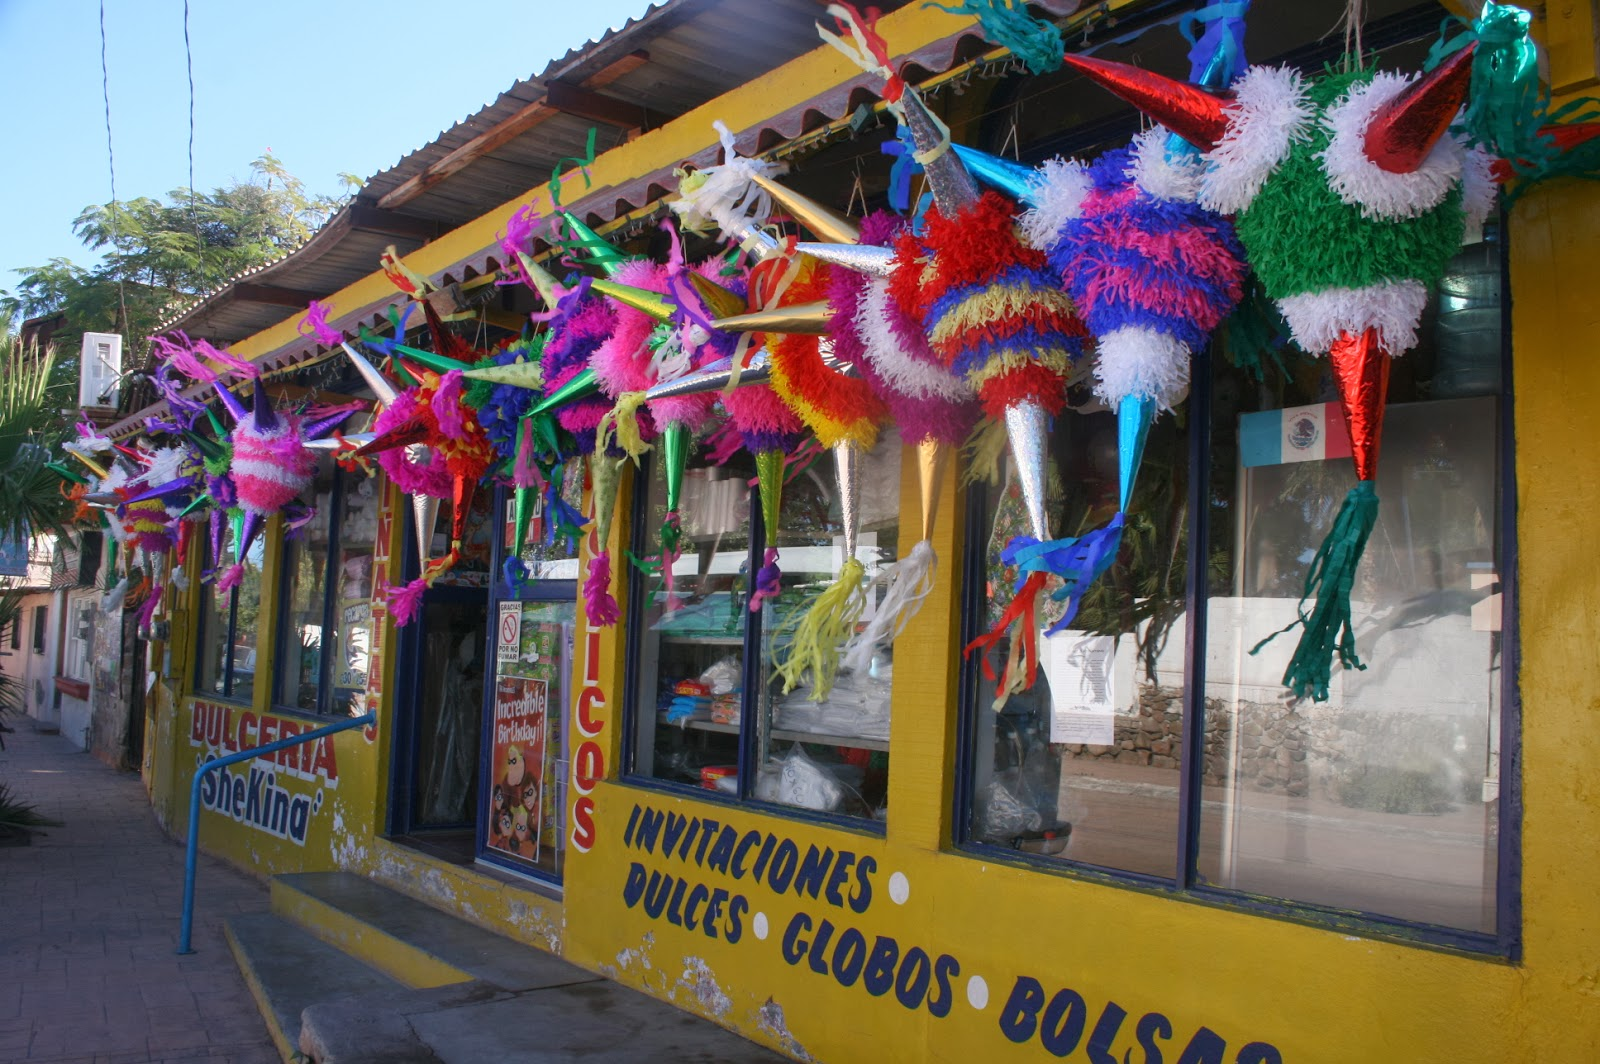 Mexican christmas party decorations - Mexican Pi Atas Which Are A Staple Of Any Respectable Posada Navidad Christmas Party Here First Filled With Candies And Small Favors And Then Smashed To